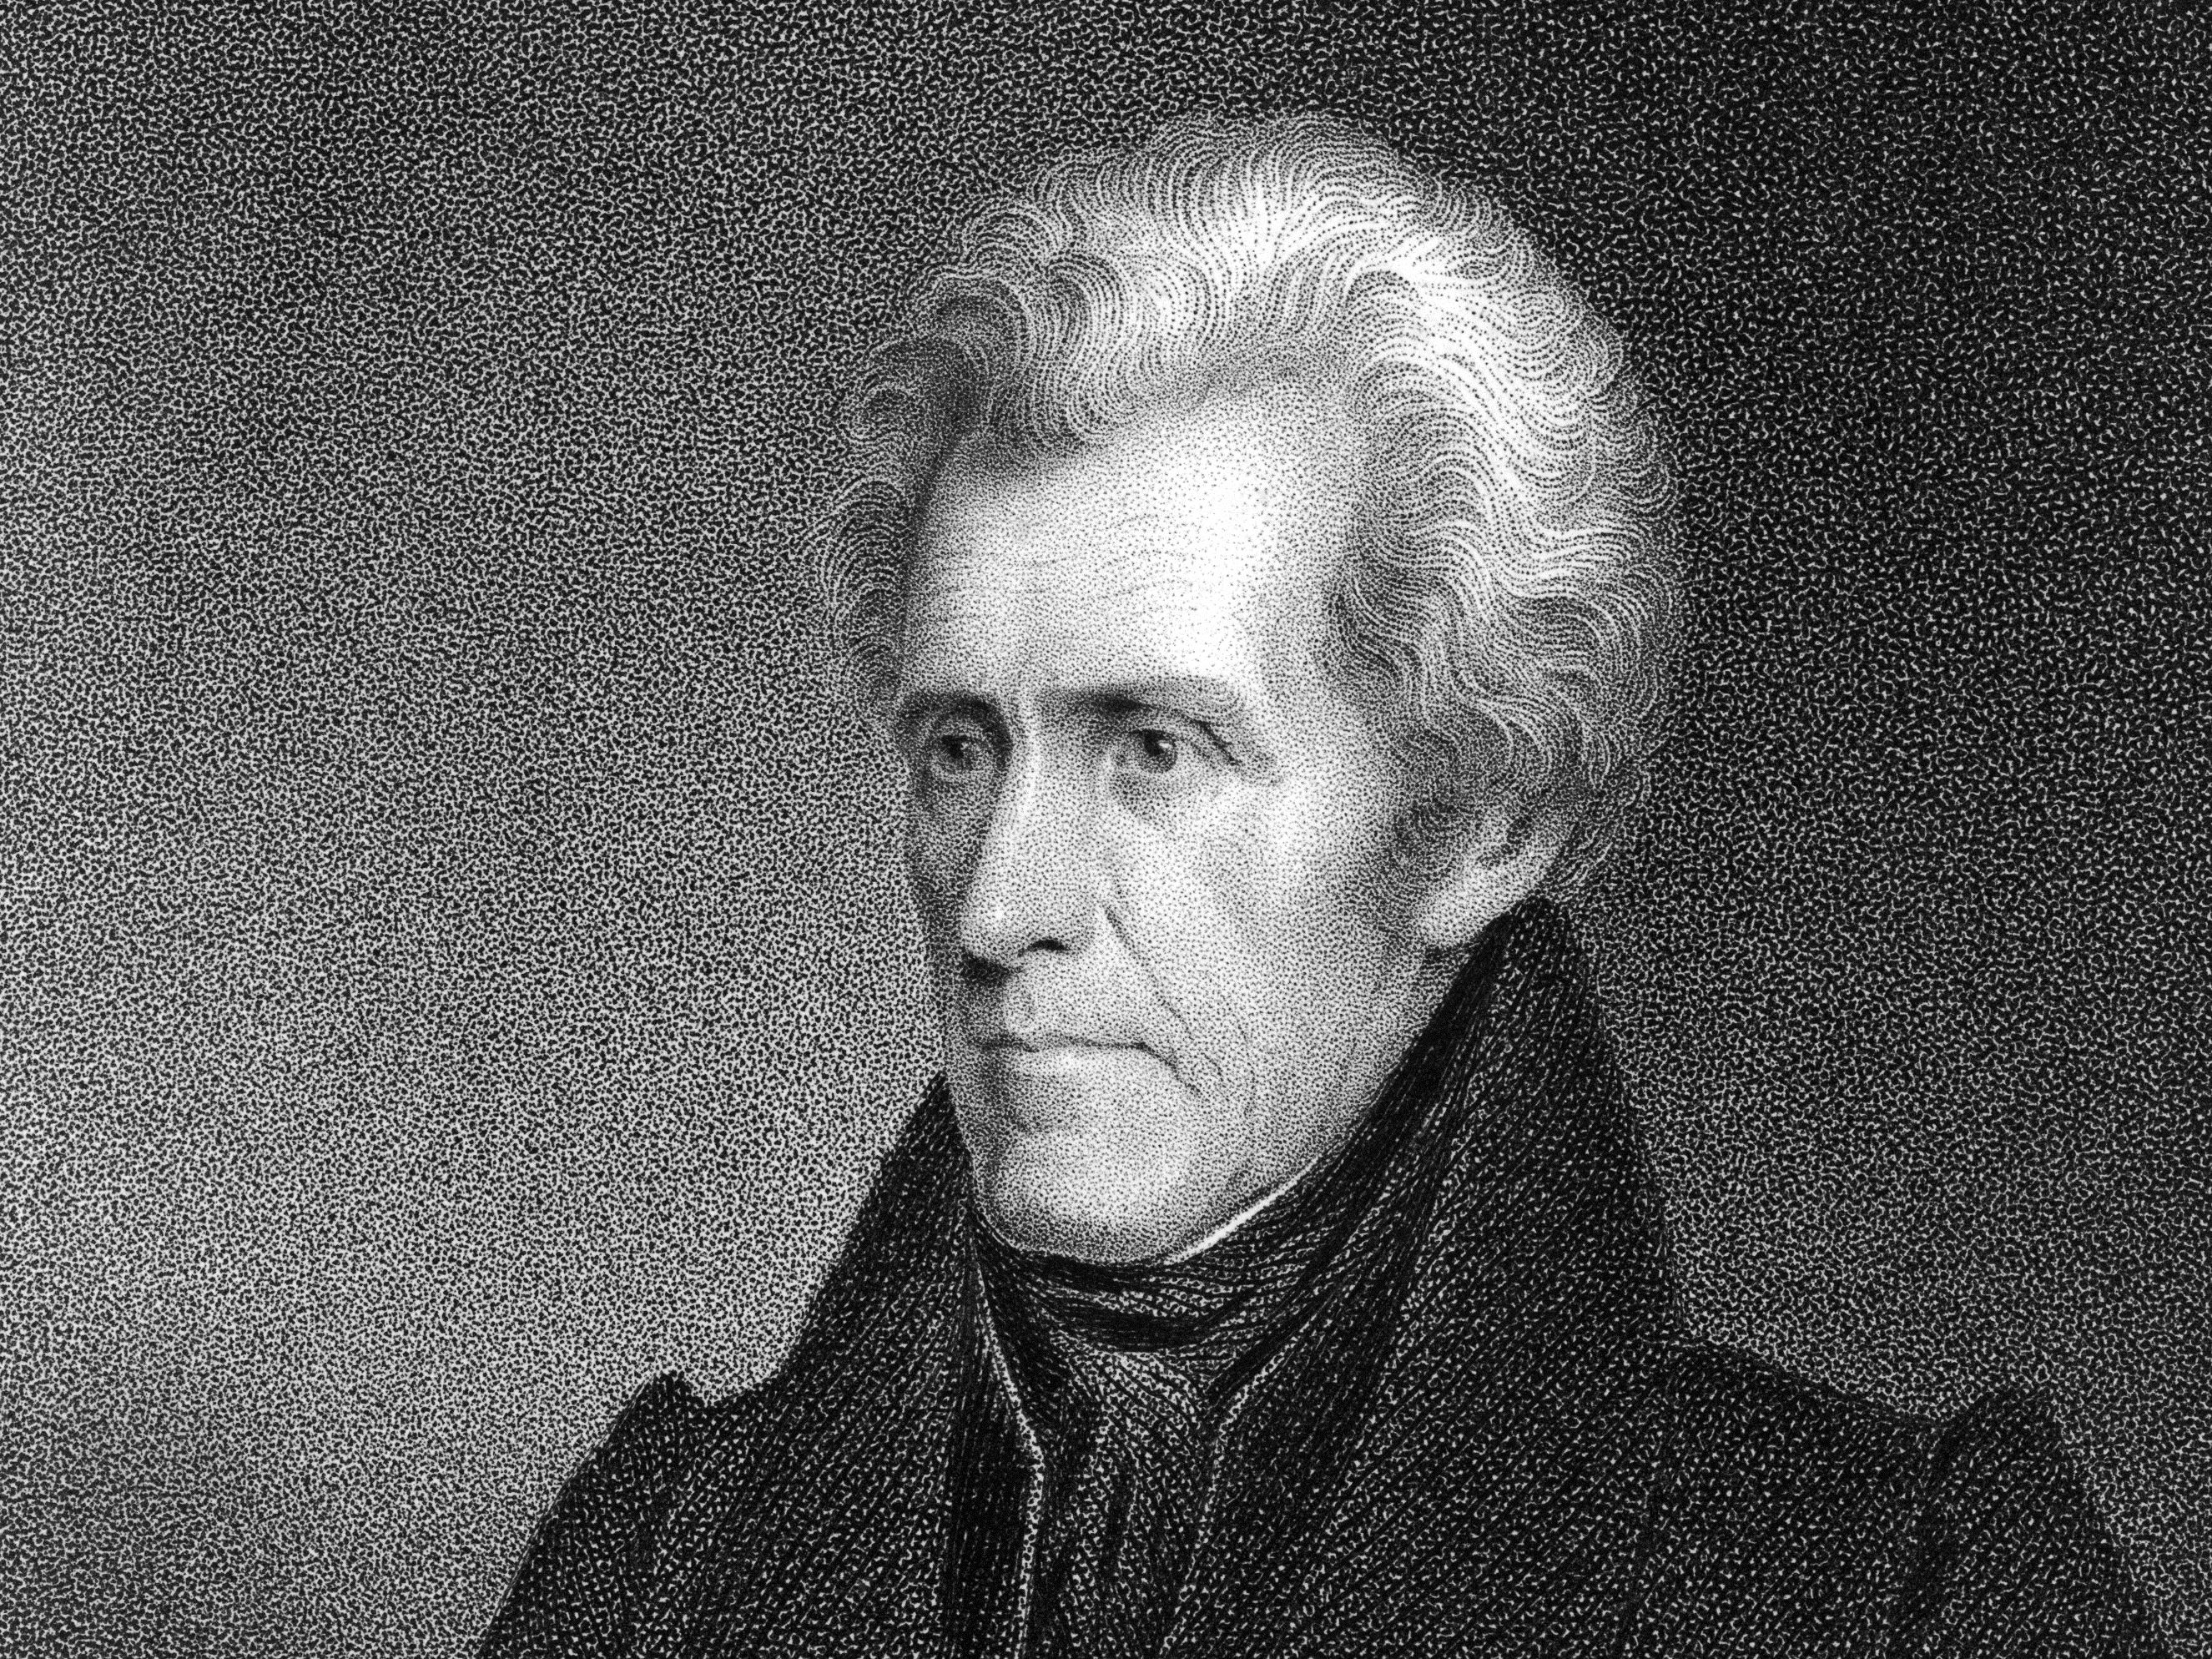 Andrew Jackson, Indian Removal, and the Trail of Tears